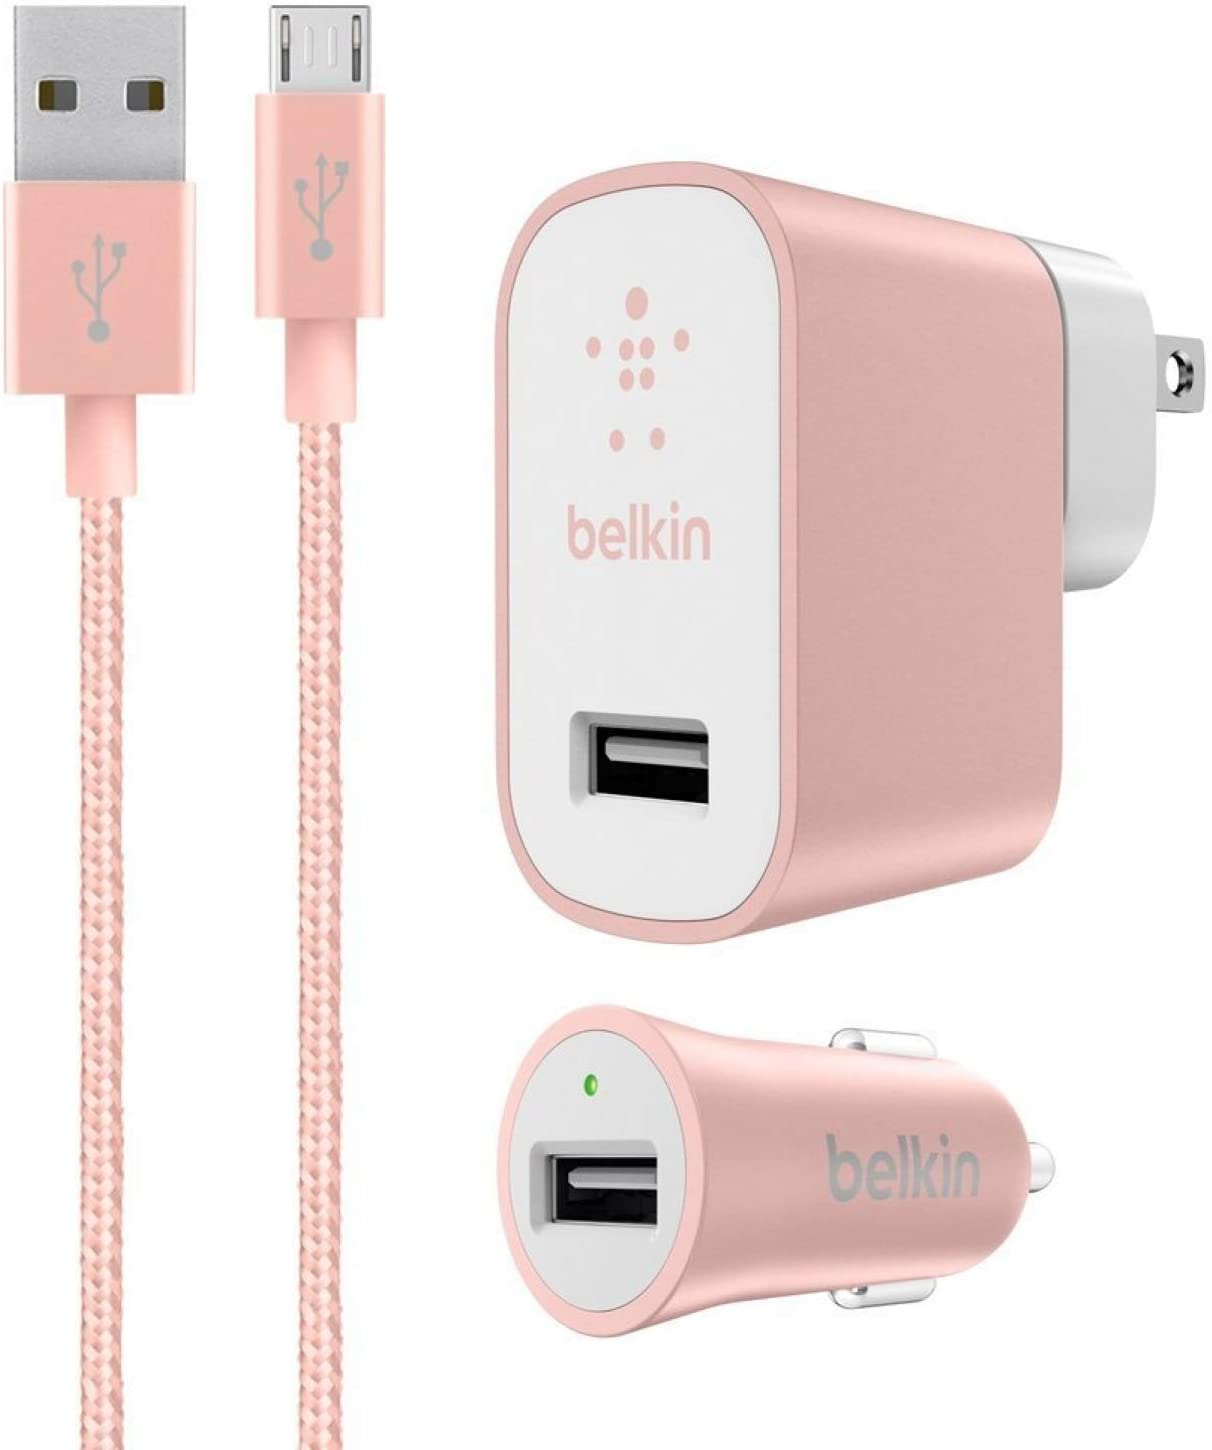 Belkin Mixit Metallic 2.4A Premium Wall and Car Charger Bundle with 4-Foot Micro USB Cable Charging Kit - for Android Phones - Rose Gold